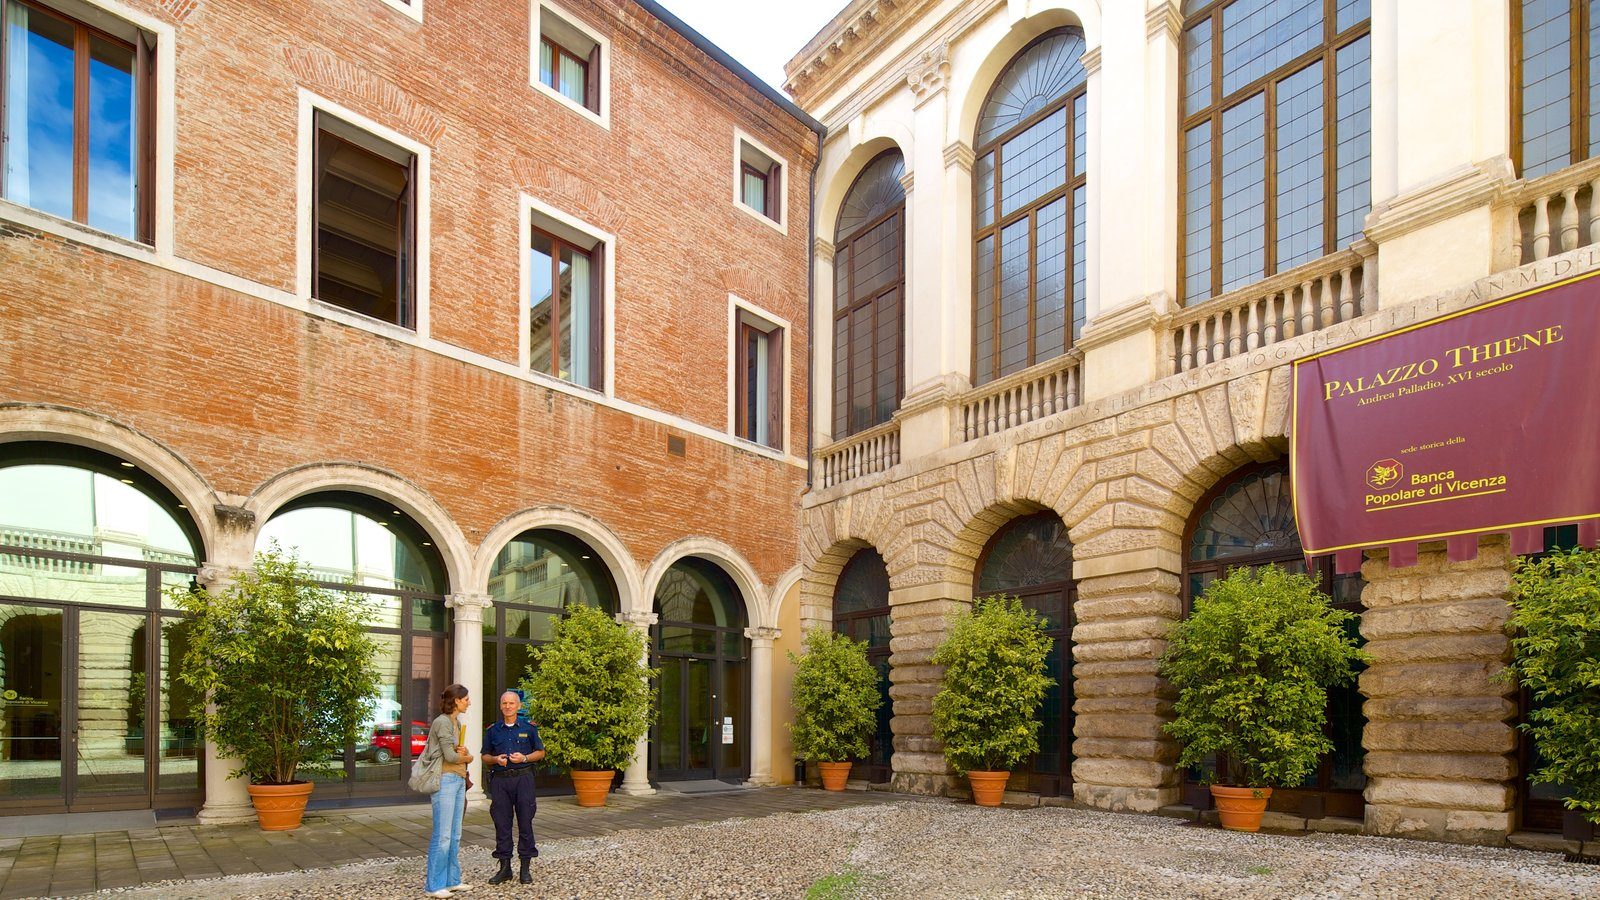 Palazzo Thiene featuring street scenes and a square or plaza